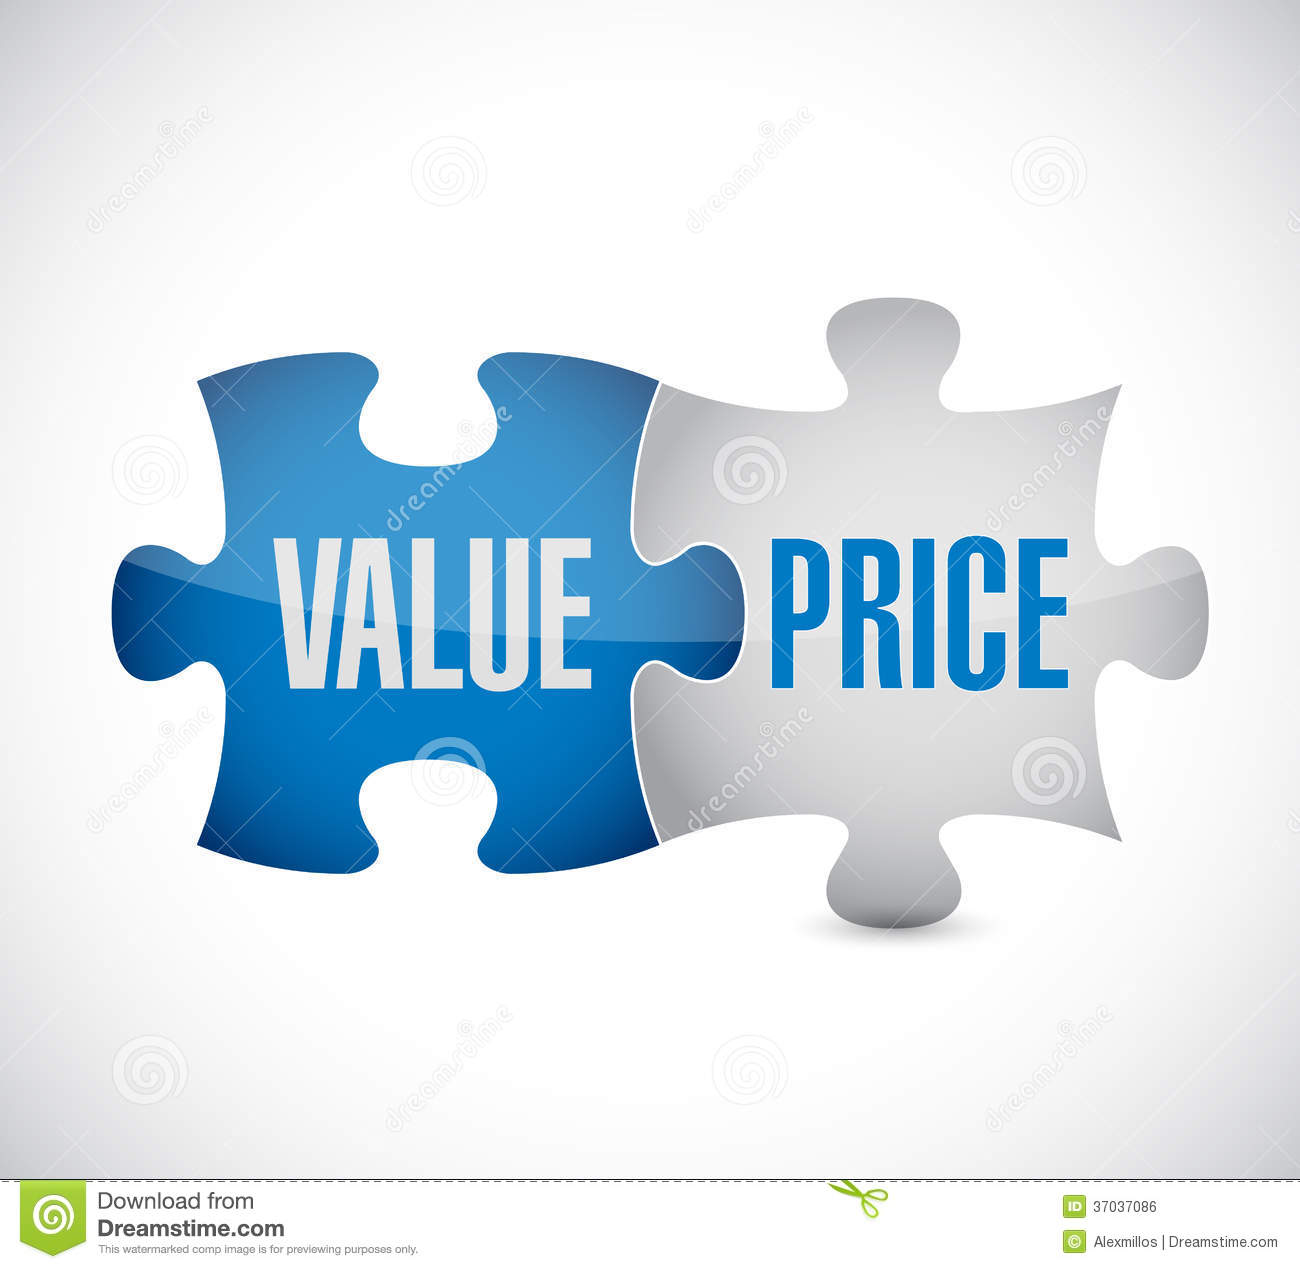 Value And Price Puzzle Pieces Illustration Design Royalty Free ...